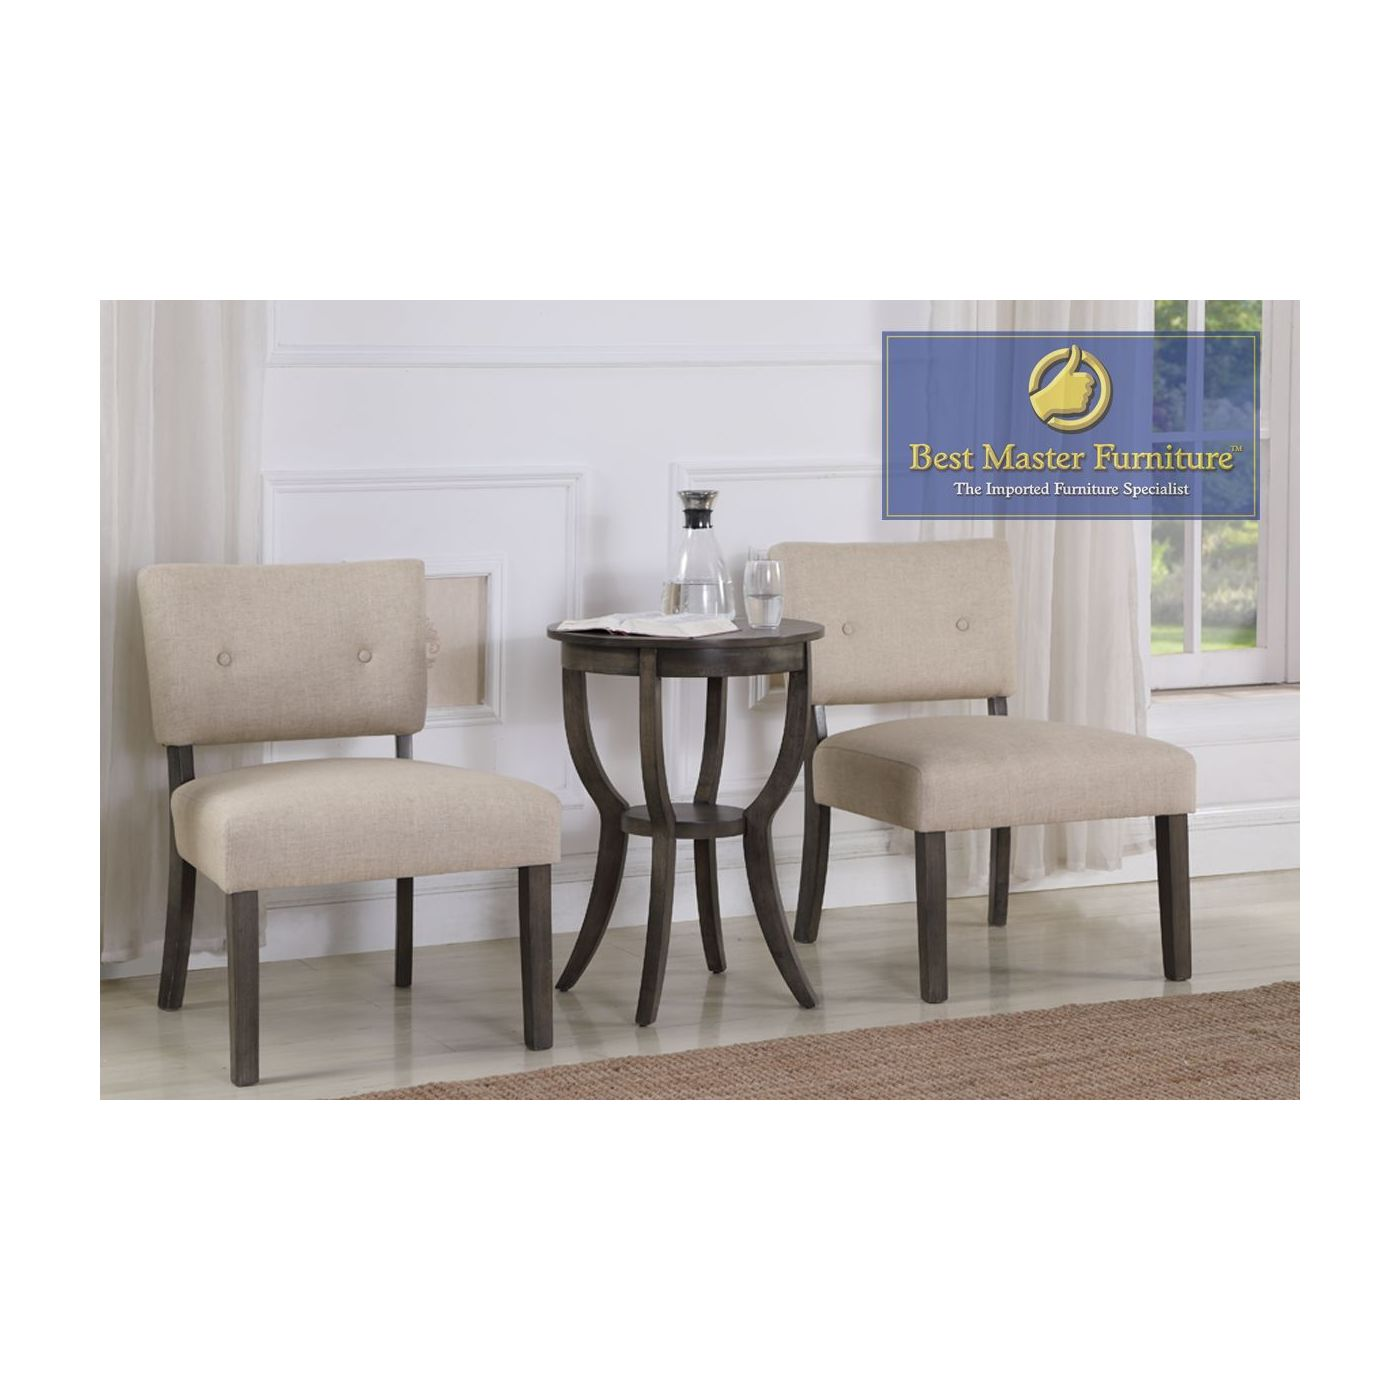 accent chair table set best master furniture chairs with gray wood and metal coffee dark console small gold round patio side home goods website half moon acrylic nesting tables